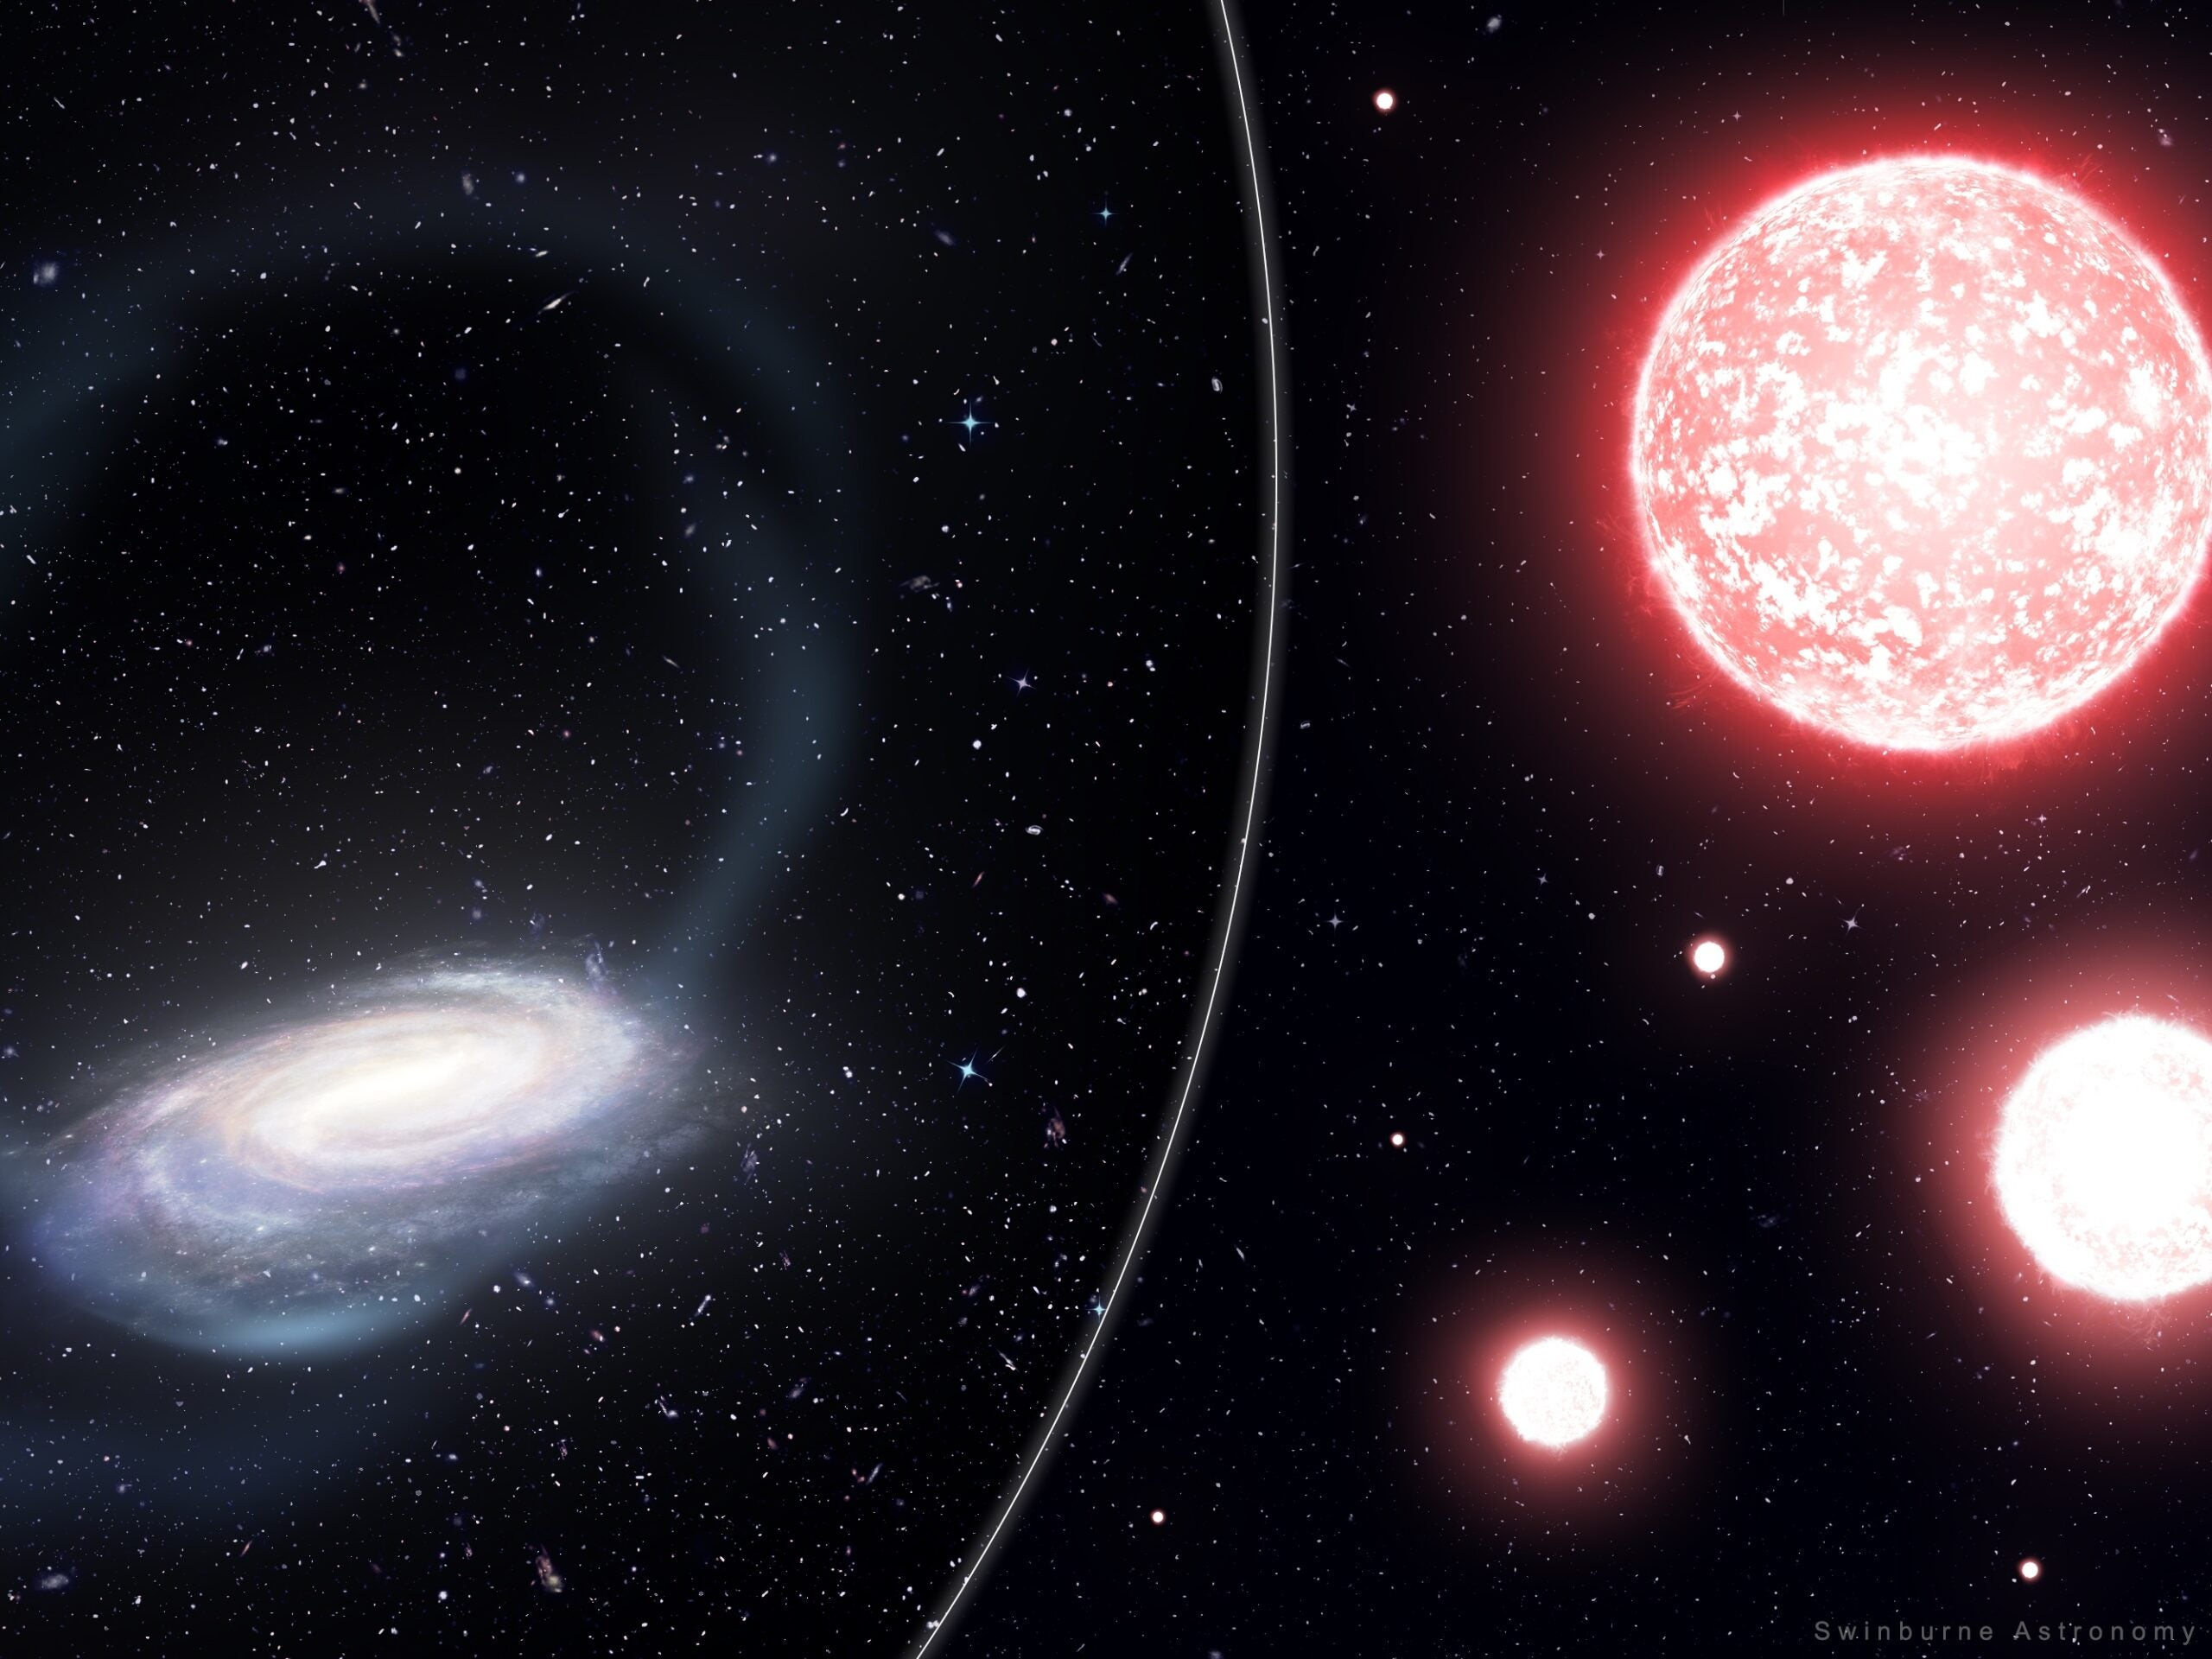 Artist's impression of the thin stream of stars torn from the Phoenix globular cluster, wrapping around the Milky Way (left). Astronomers targeted bright red giant stars (artist's impression, right) to measure the chemical composition of the disrupted Phoenix globular cluster.